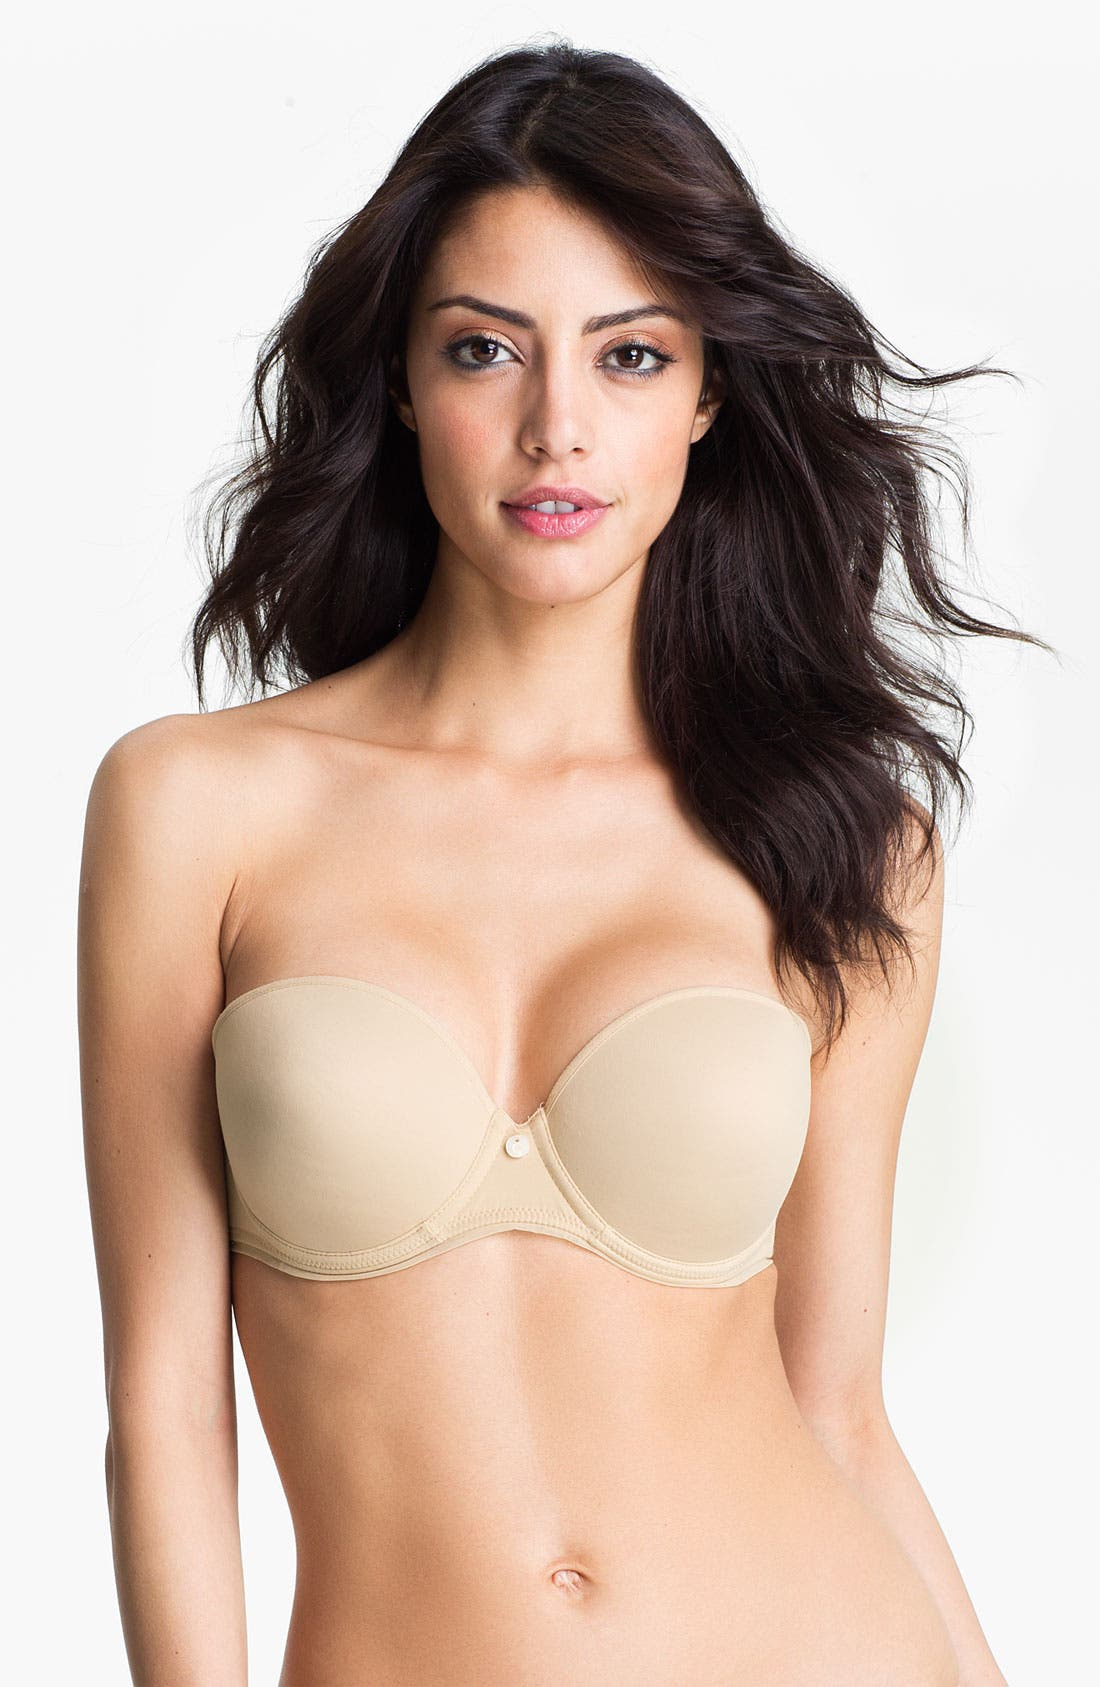 Alternate Image 1 Selected - Chantelle Intimates 'Sensua' Convertible Strapless Bra